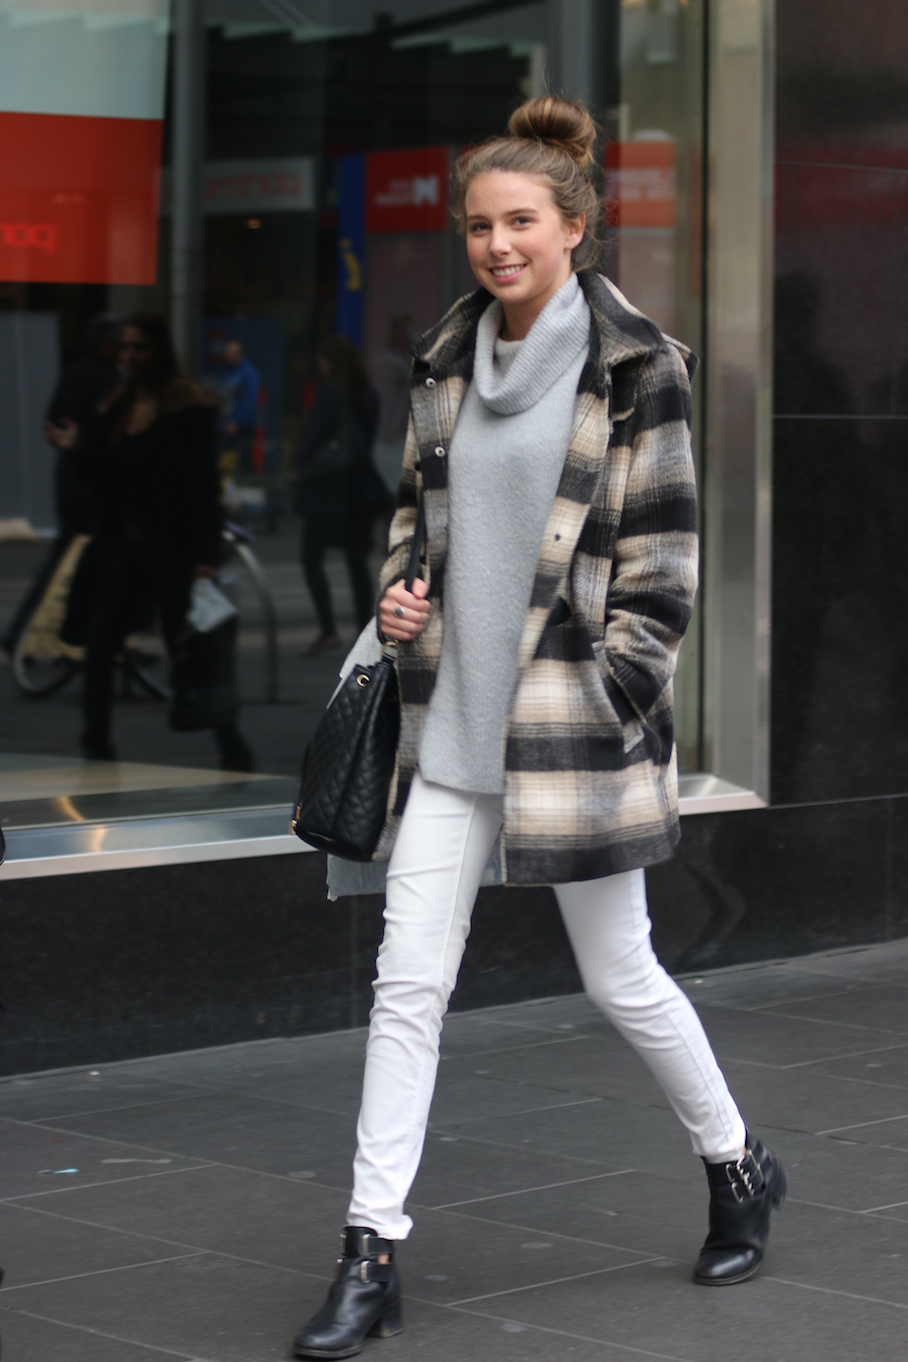 Vic: Sara Venter, Business/Arts student, Bourke St Melbourne. Photo: Tracie Sullivan.